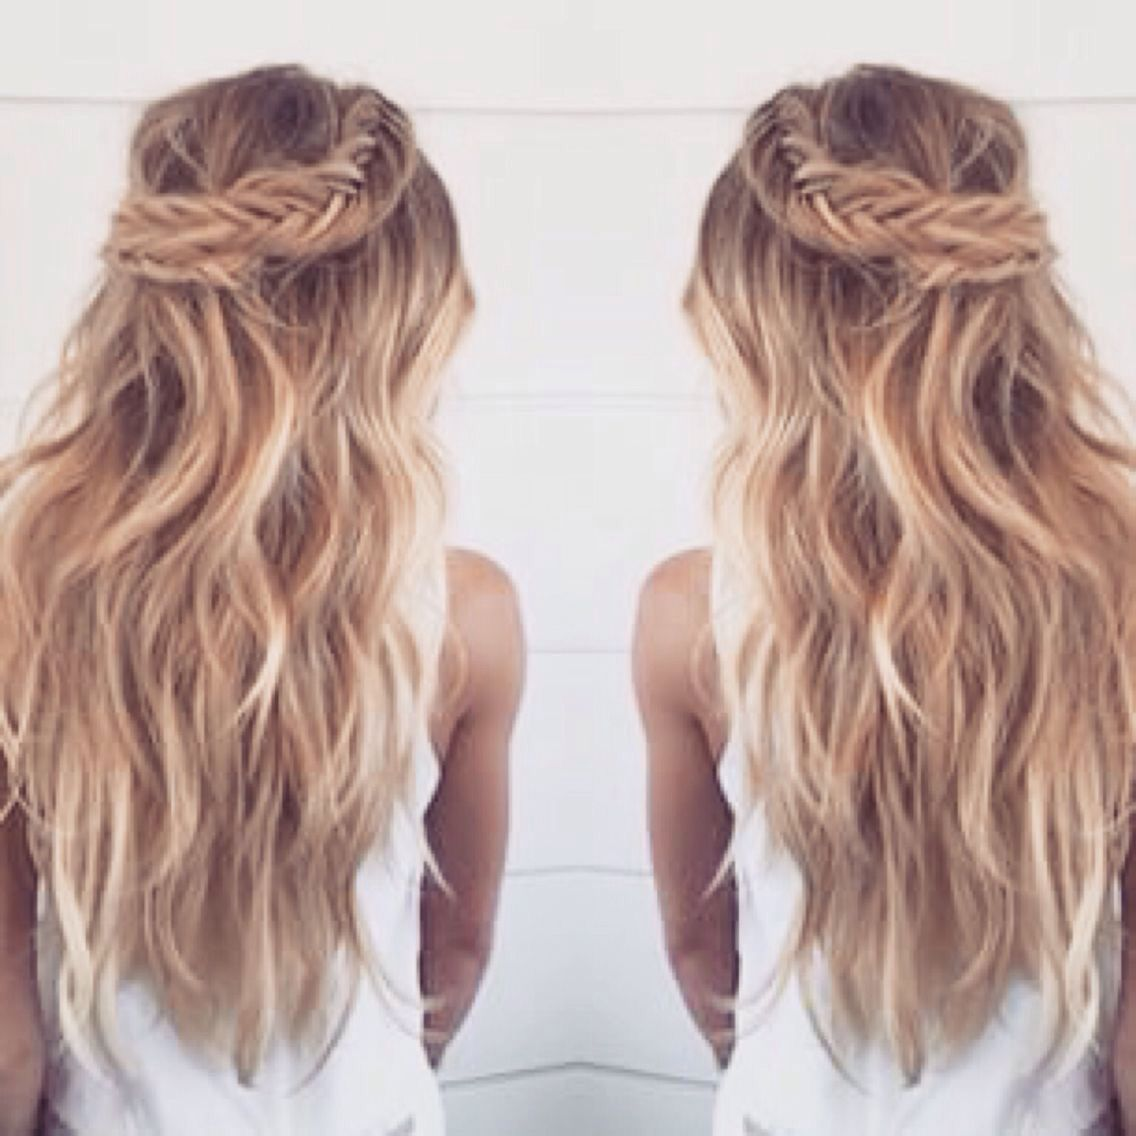 hair goals, tumblr, hairstyles // pinterest and insta